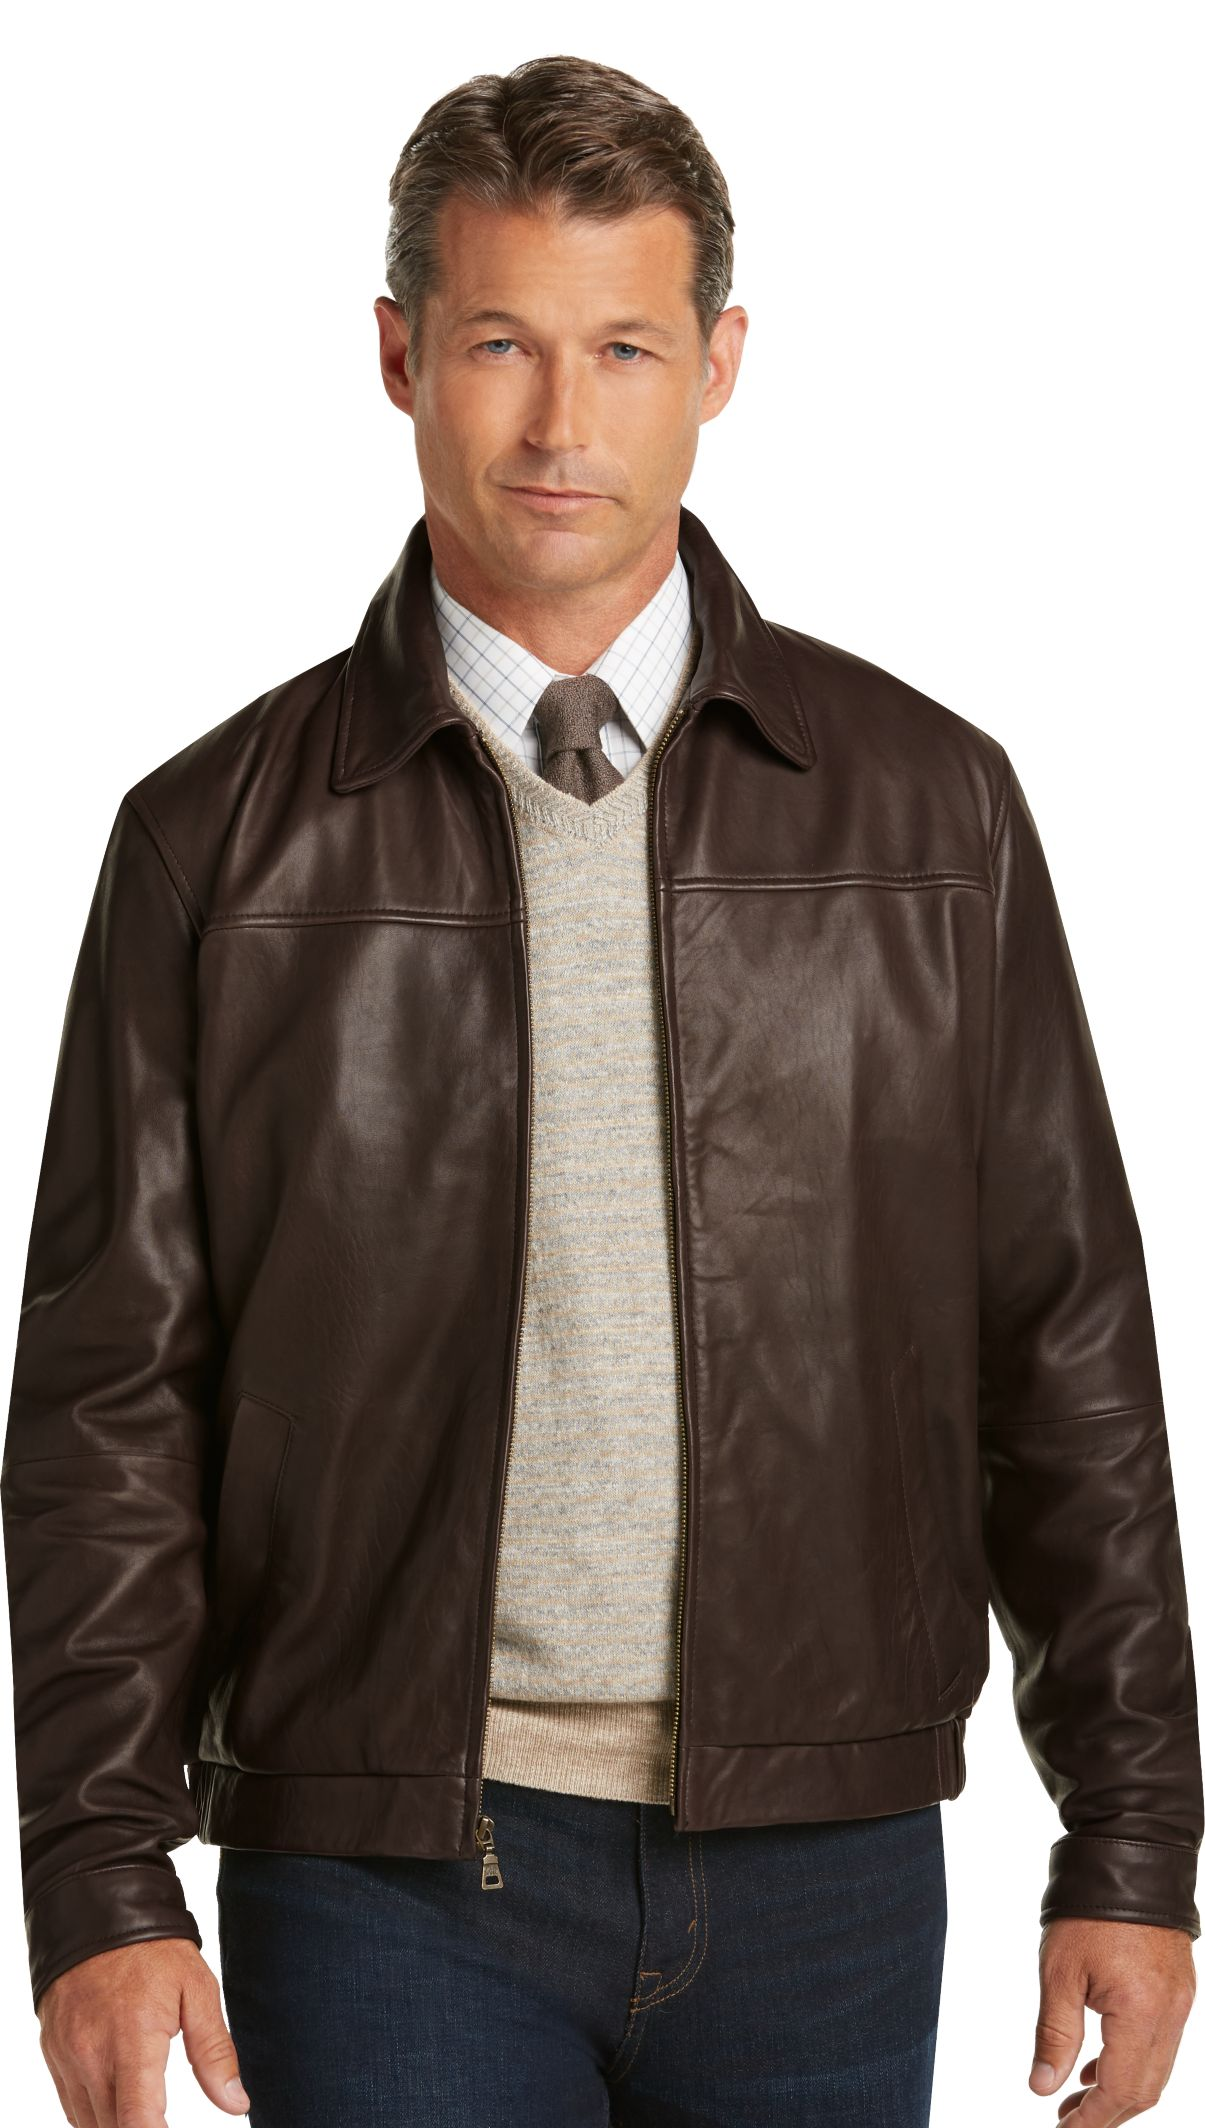 d971c3c65 Signature Collection Traditional Fit Leather Bomber Jacket - Big ...